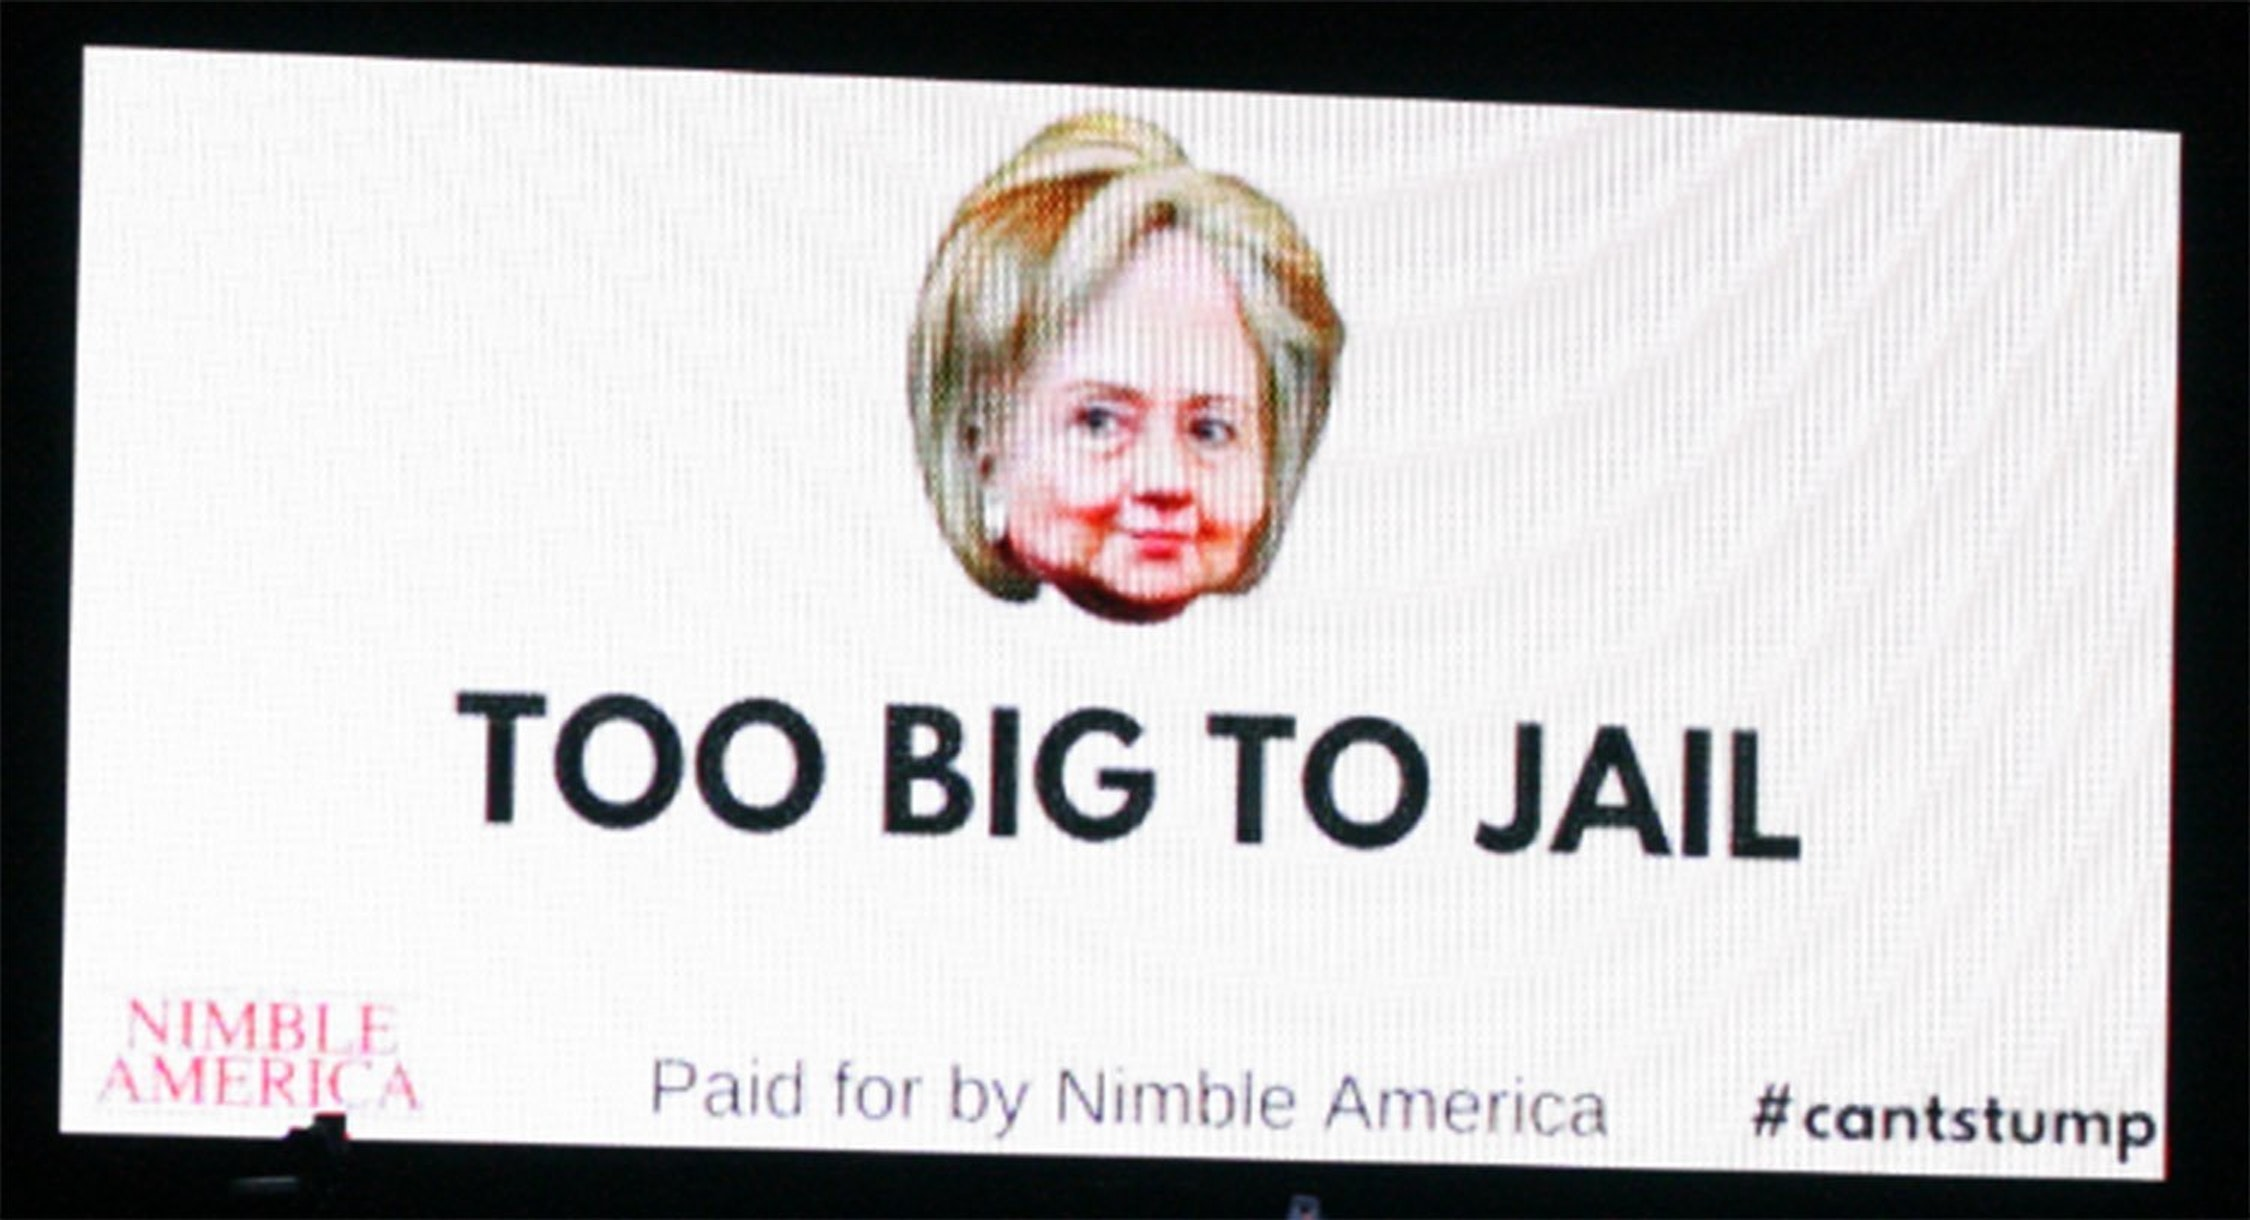 Here's Nimble America's shitpost of a billboard.